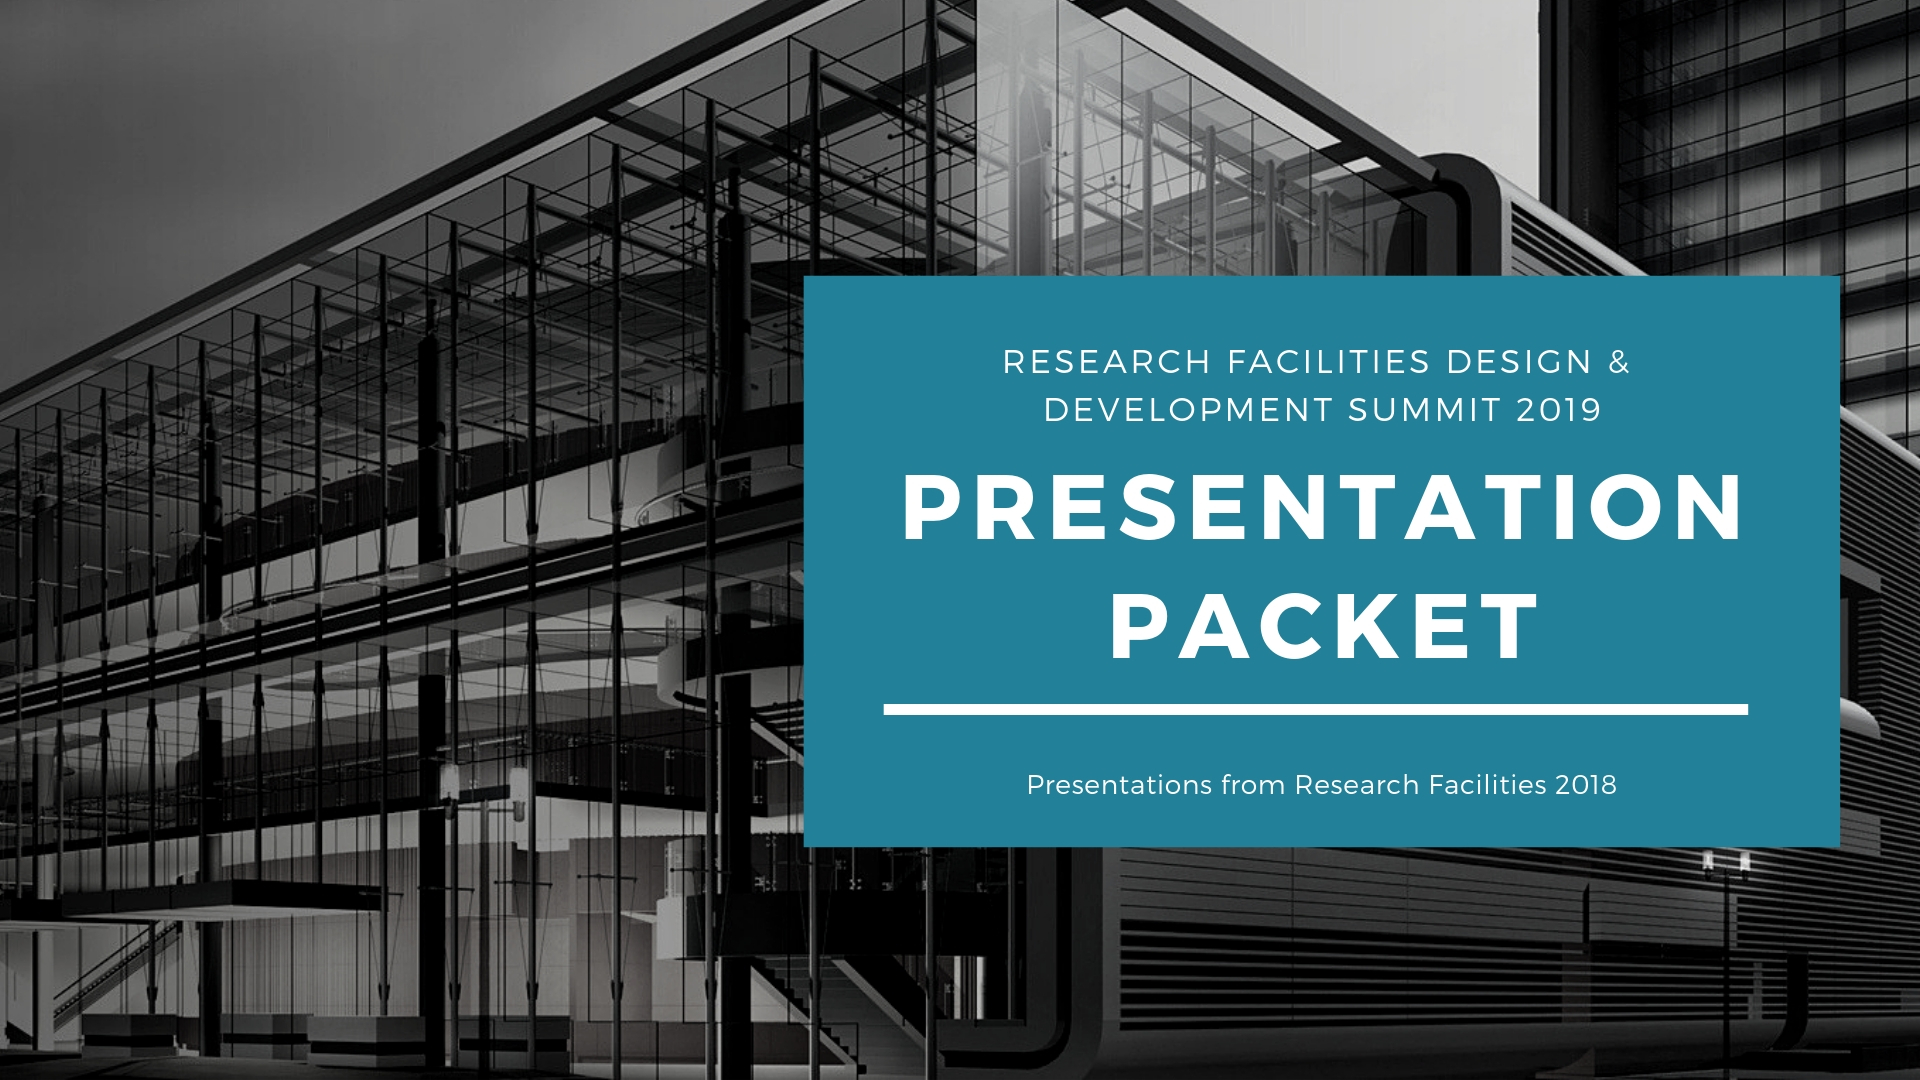 Research Facilities Design & Development Presentation Packet